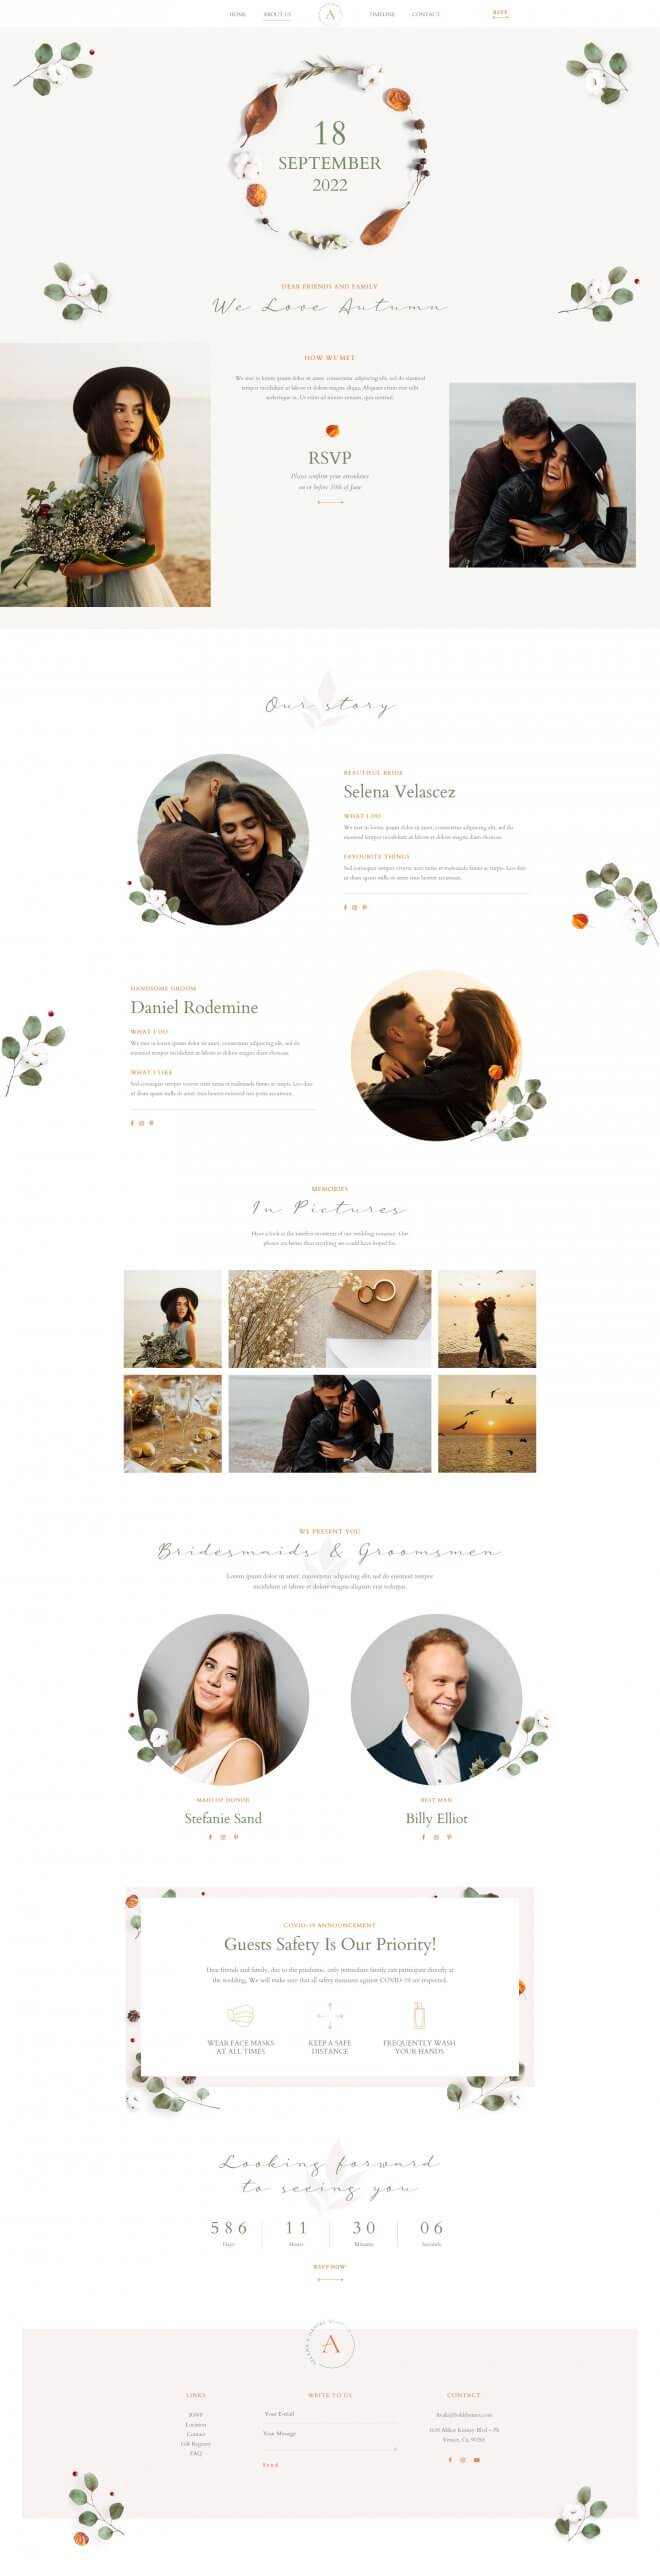 http://avala.bold-themes.com/wp-content/uploads/2021/02/Autumn-About-Us-Couples-scaled.jpg